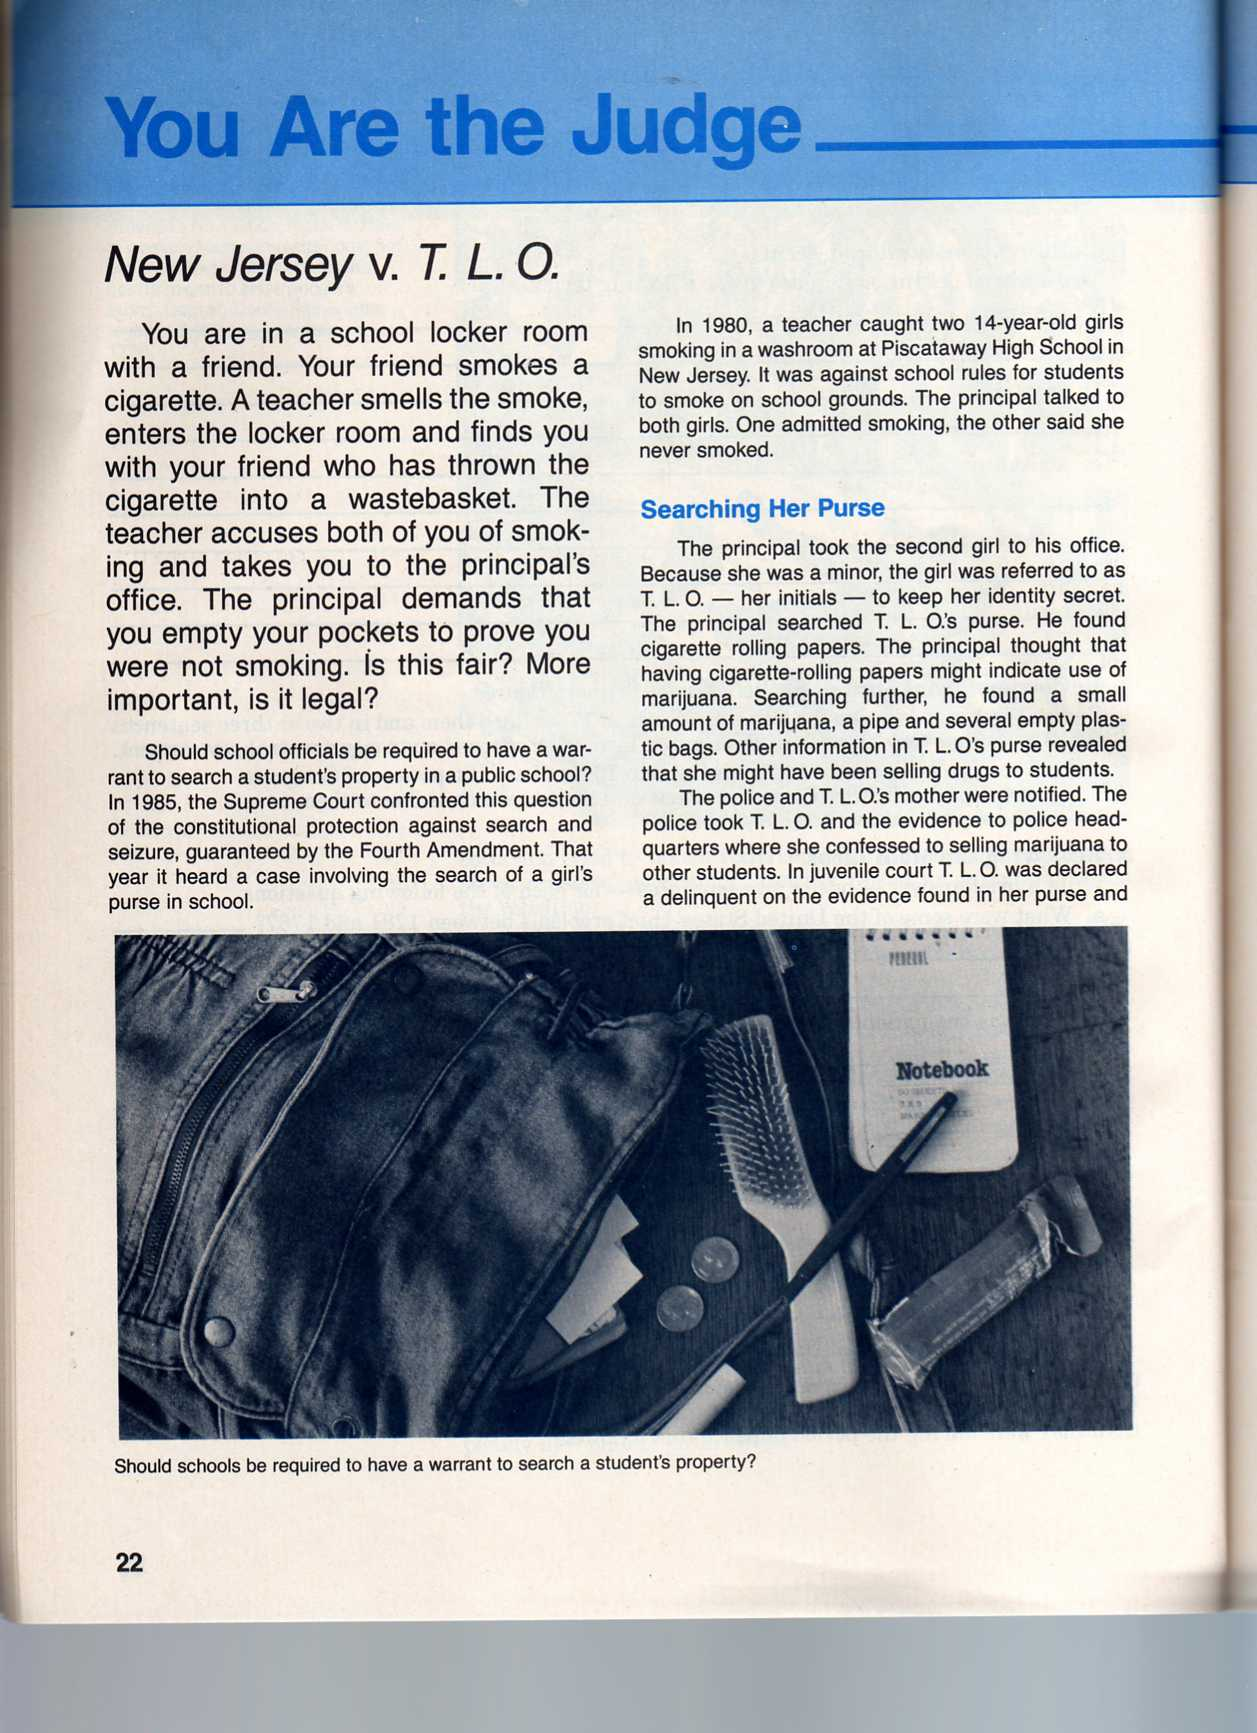 new jersey vs tlo New jersey vs tlo by daylen woods this case is about a teacher who catches a 14 year old female named tracy lois odem (tlo) smoking a cigarette in the restroom.